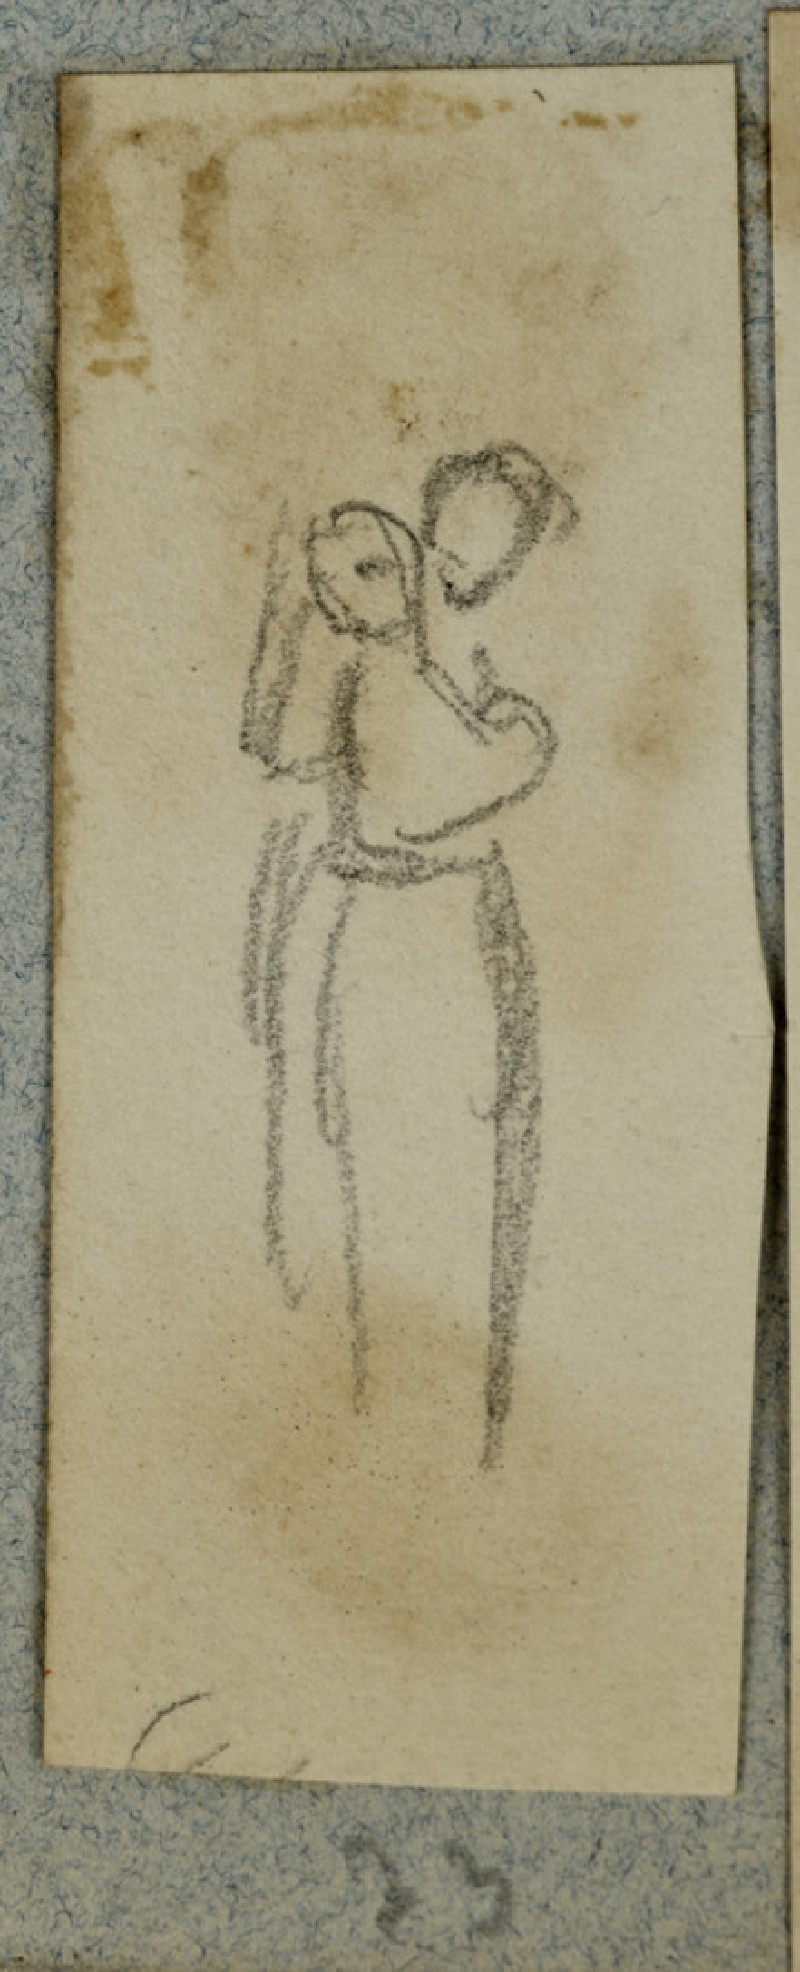 Woman in Mediaeval Costume looking into a Hand Mirror